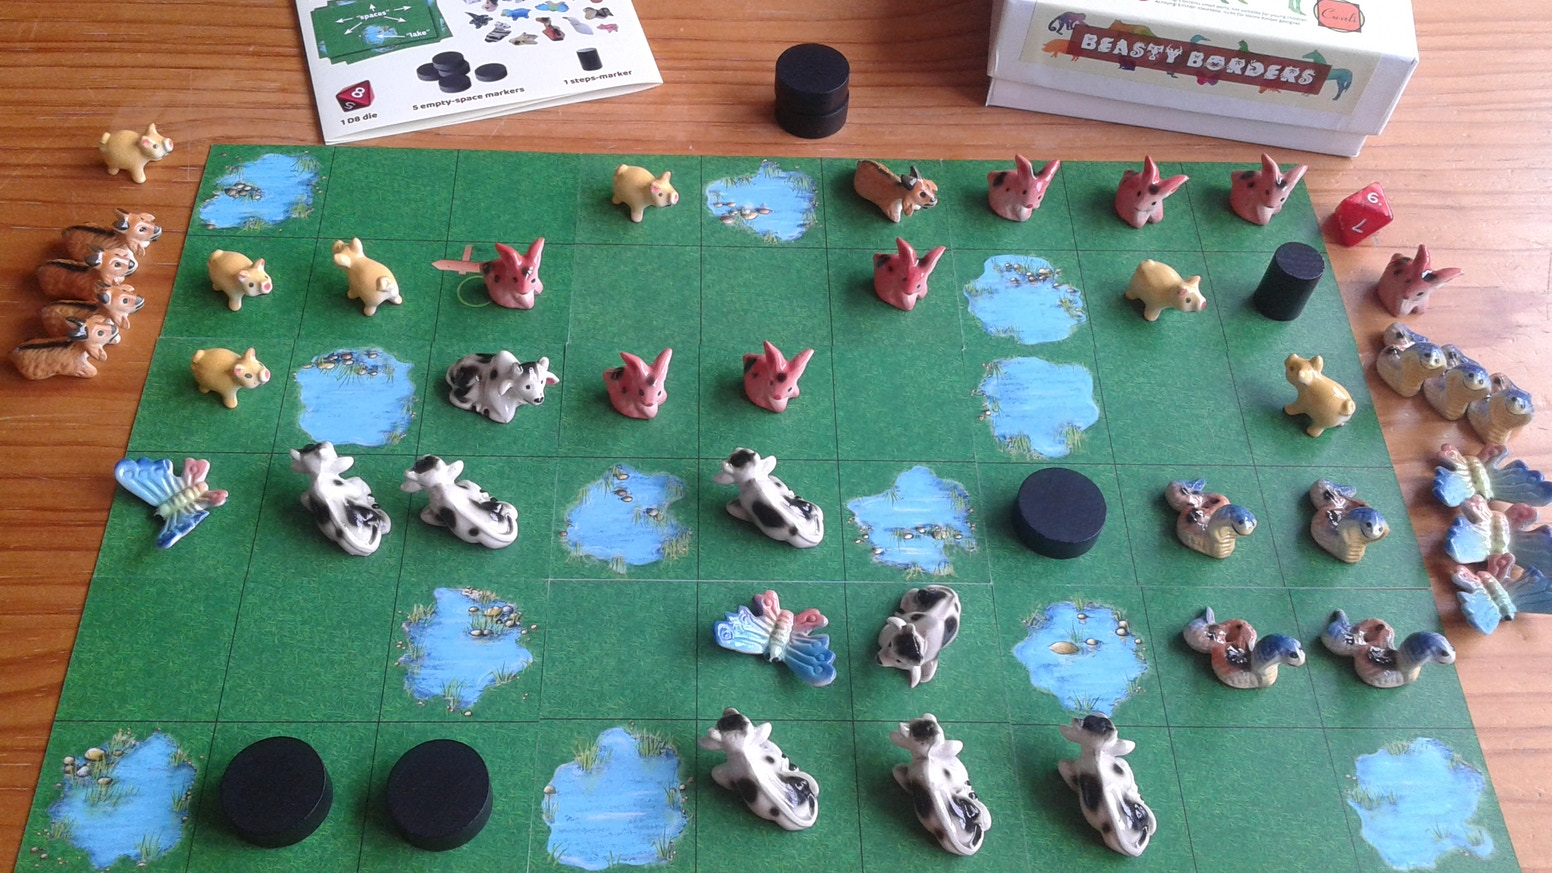 Farmer vs Forester: domesticated animals vs wild animals. Make the biggest groups in this Roll&Place game. Limited edition: 300 or less